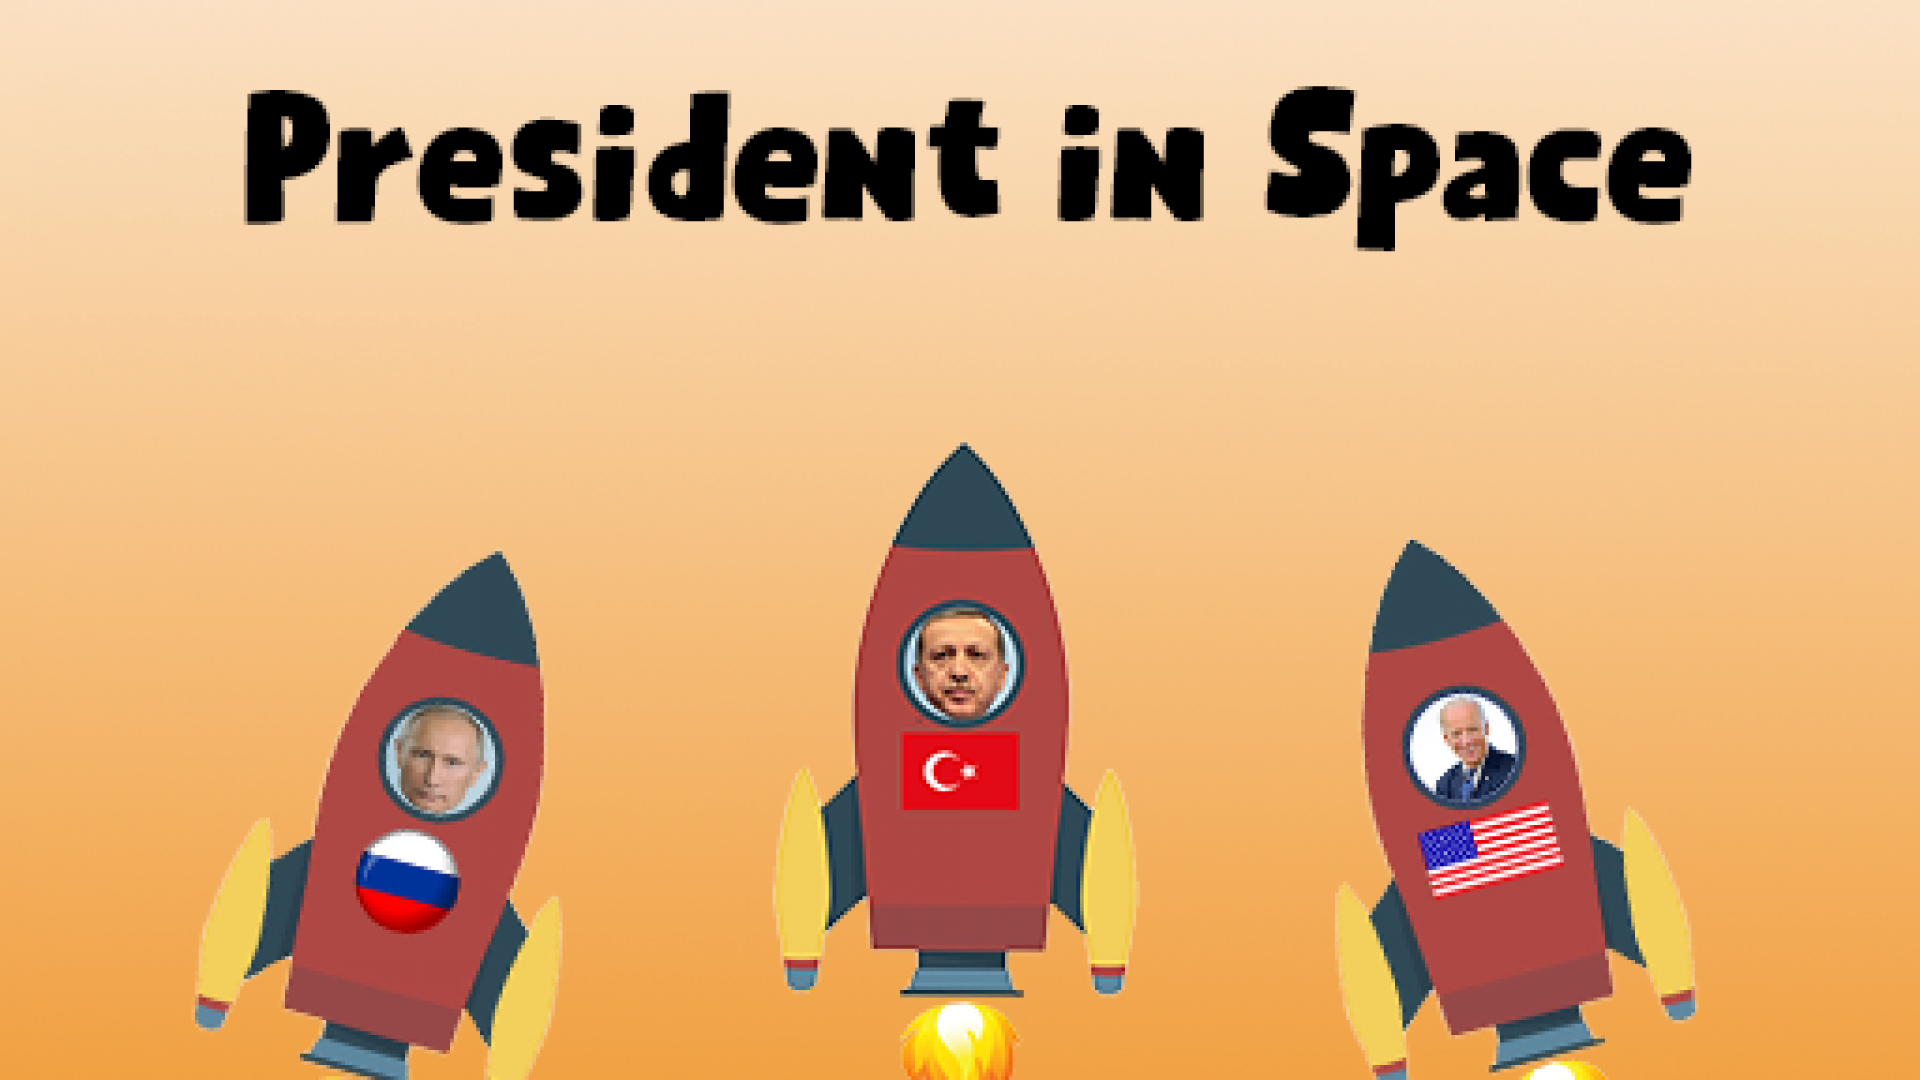 Mission: Leaders in Space